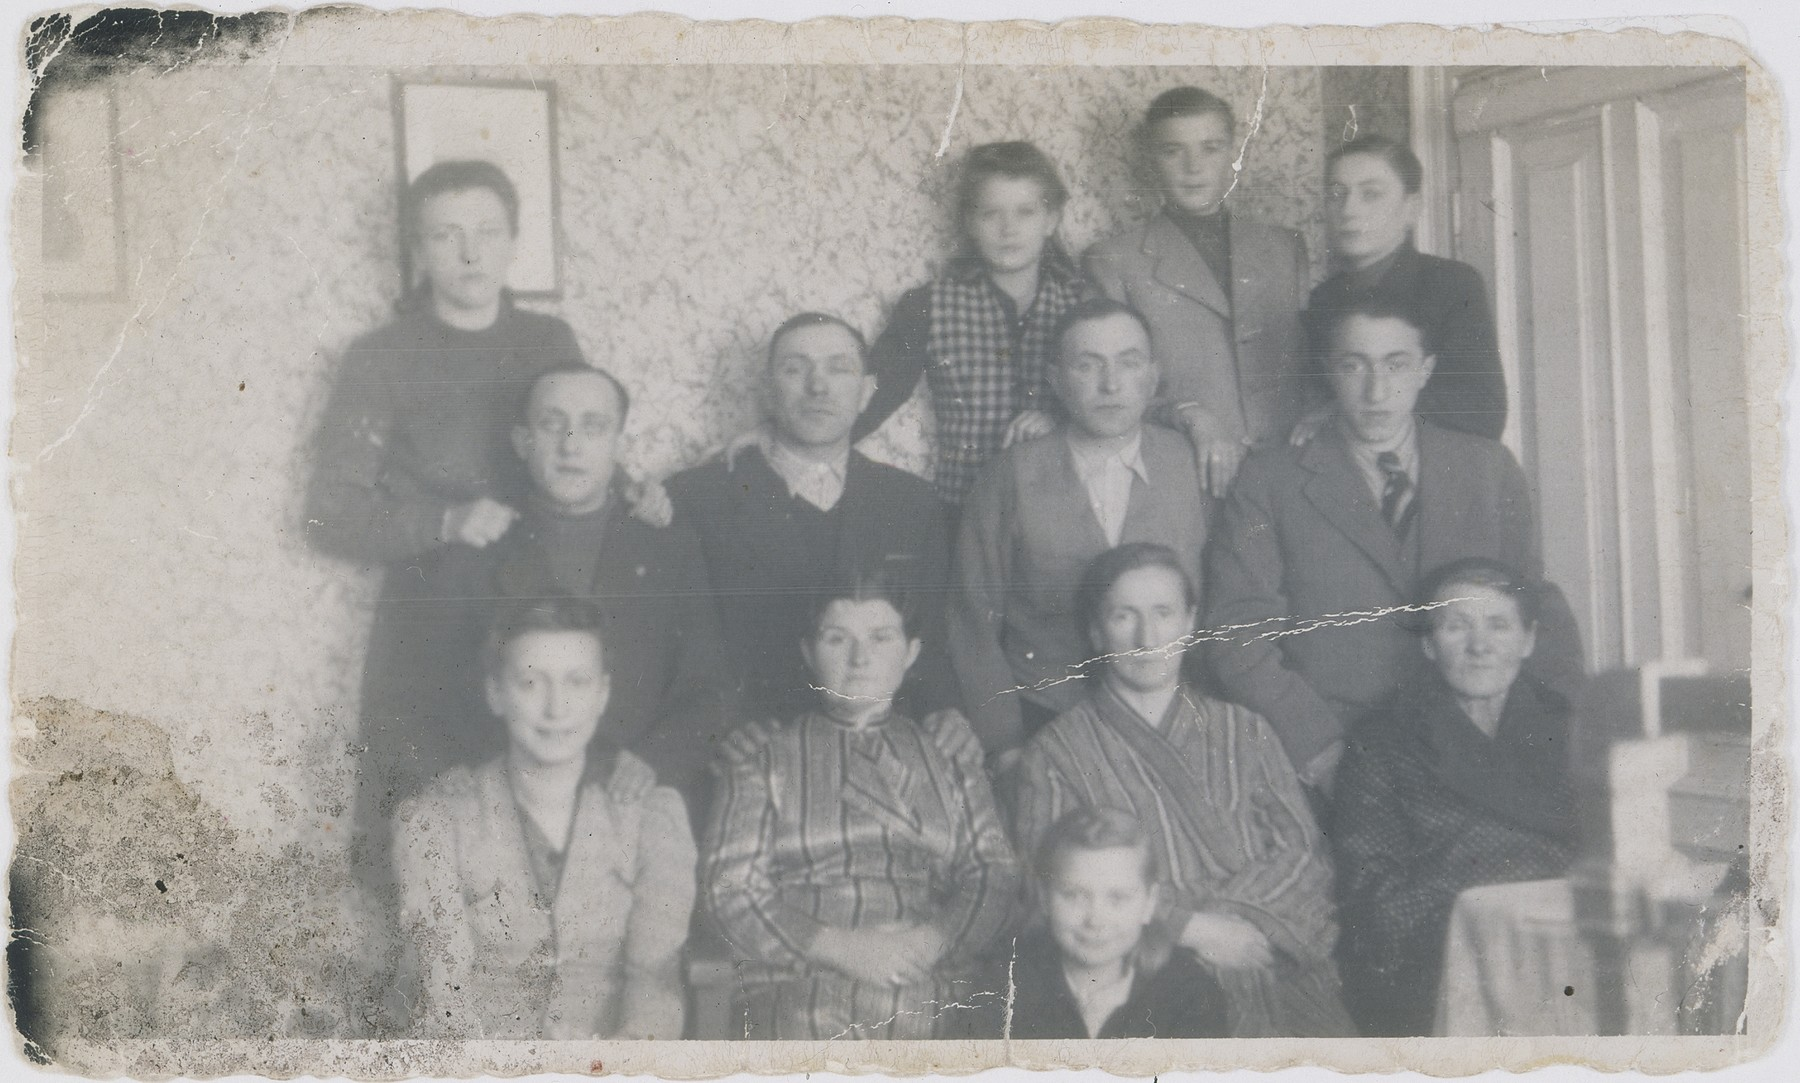 Portrait of the Wierzbicki and Kostanski families in the Warsaw ghetto.  Pictured in the center, front is Danusia.  In the front row from left to right are: Fela, Wladyslawa Wierzbicka, Berkowa, Grandma Bajla.  In the second row from the front, from left to right are: Szmulek, Ajzyk, Berek, Jakob.  In the top row from left to right are: Nacha, Jadzia, Jan and Nathan.